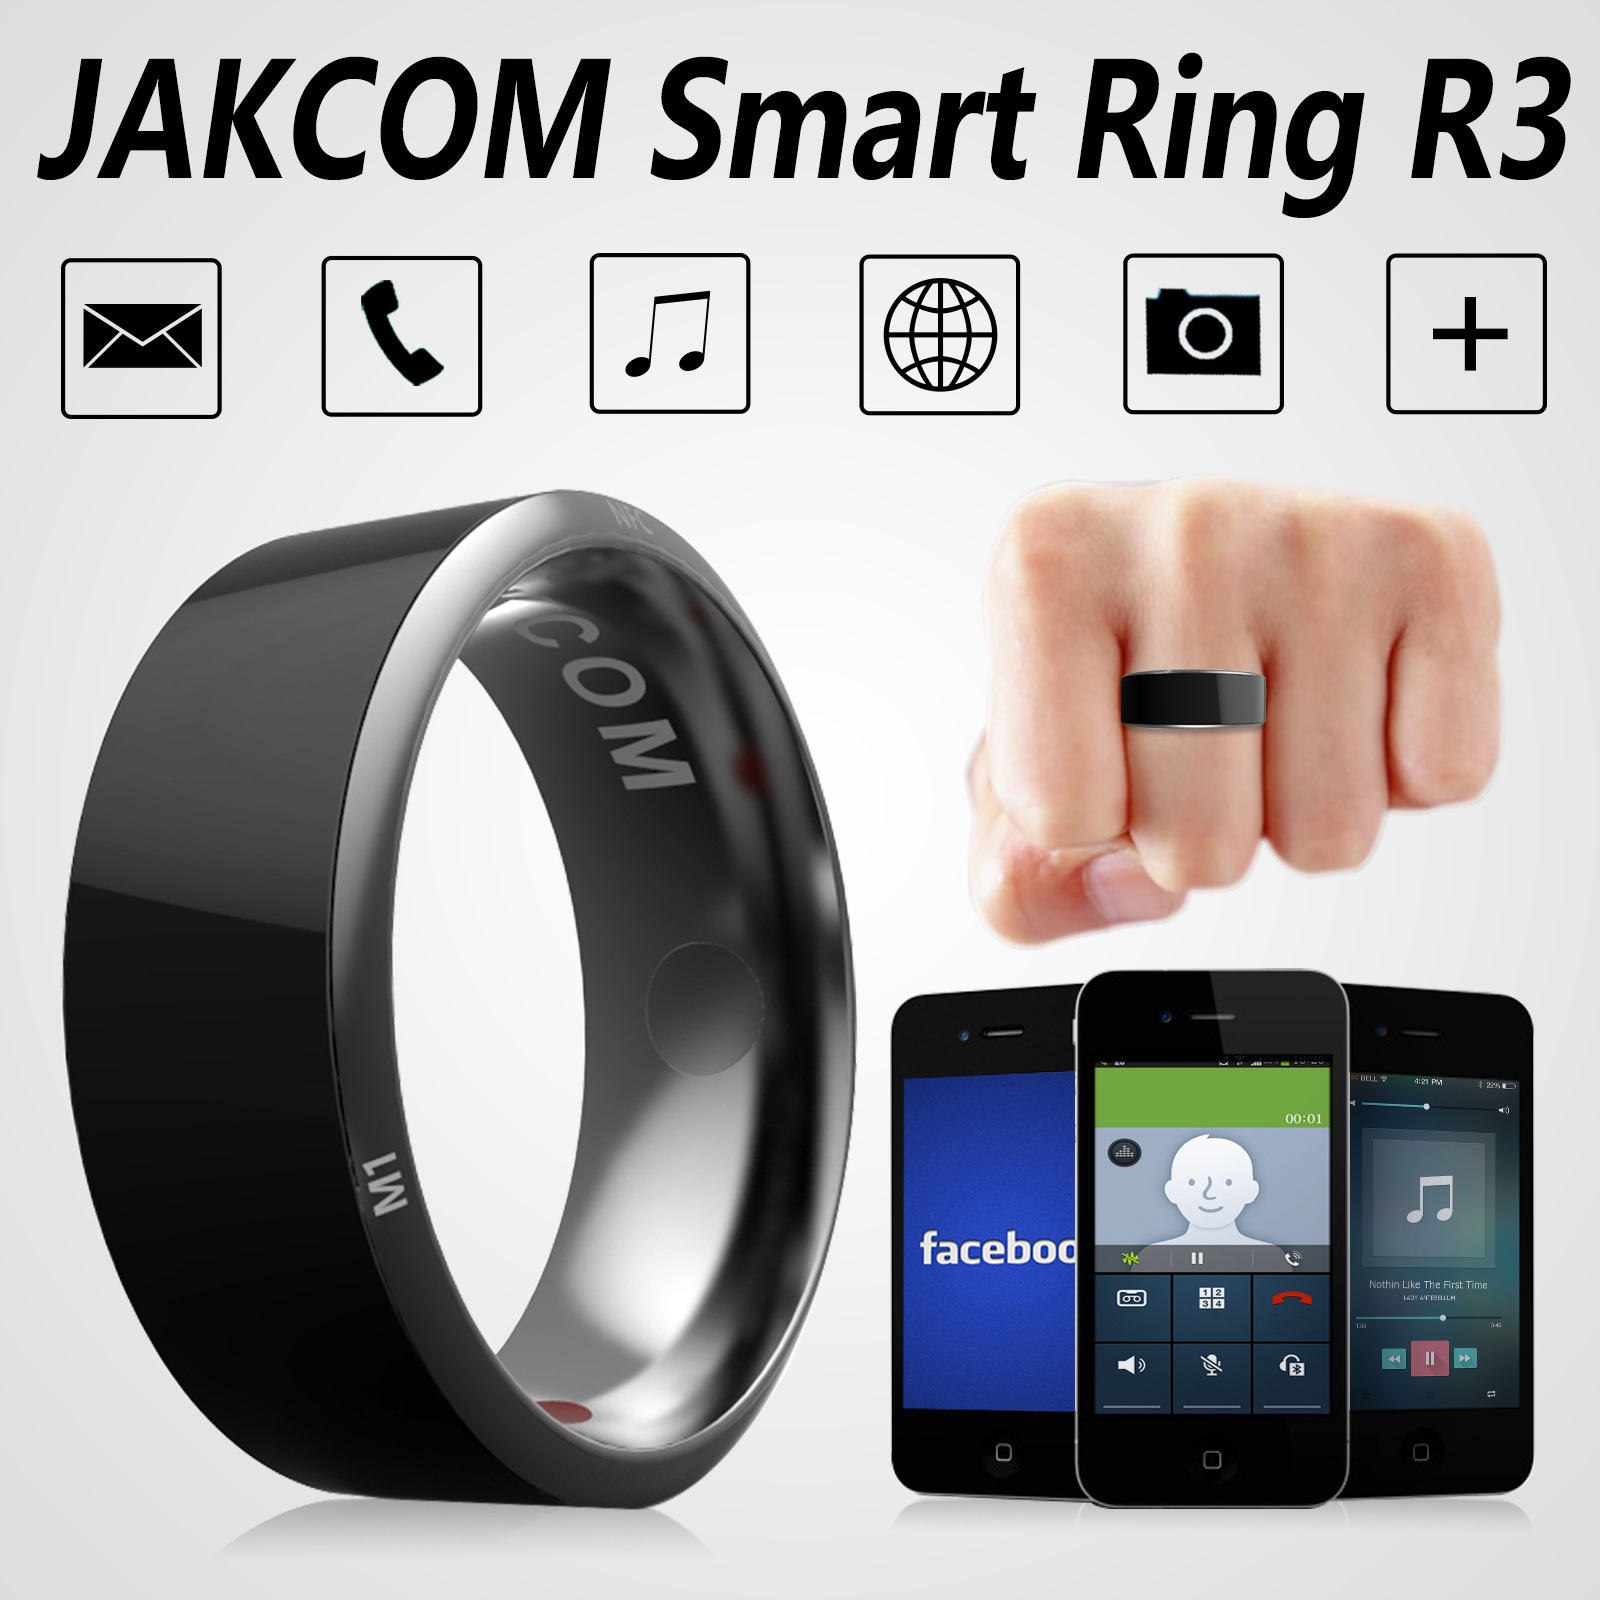 Jakcom R3 Smart Ring electronic CNC Metal Mini Magic RFID NFC 125khz 13.56mhz IC/ID Rewritable Access Control Key Card Tag Copy-in Access Control Cards from Security & Protection